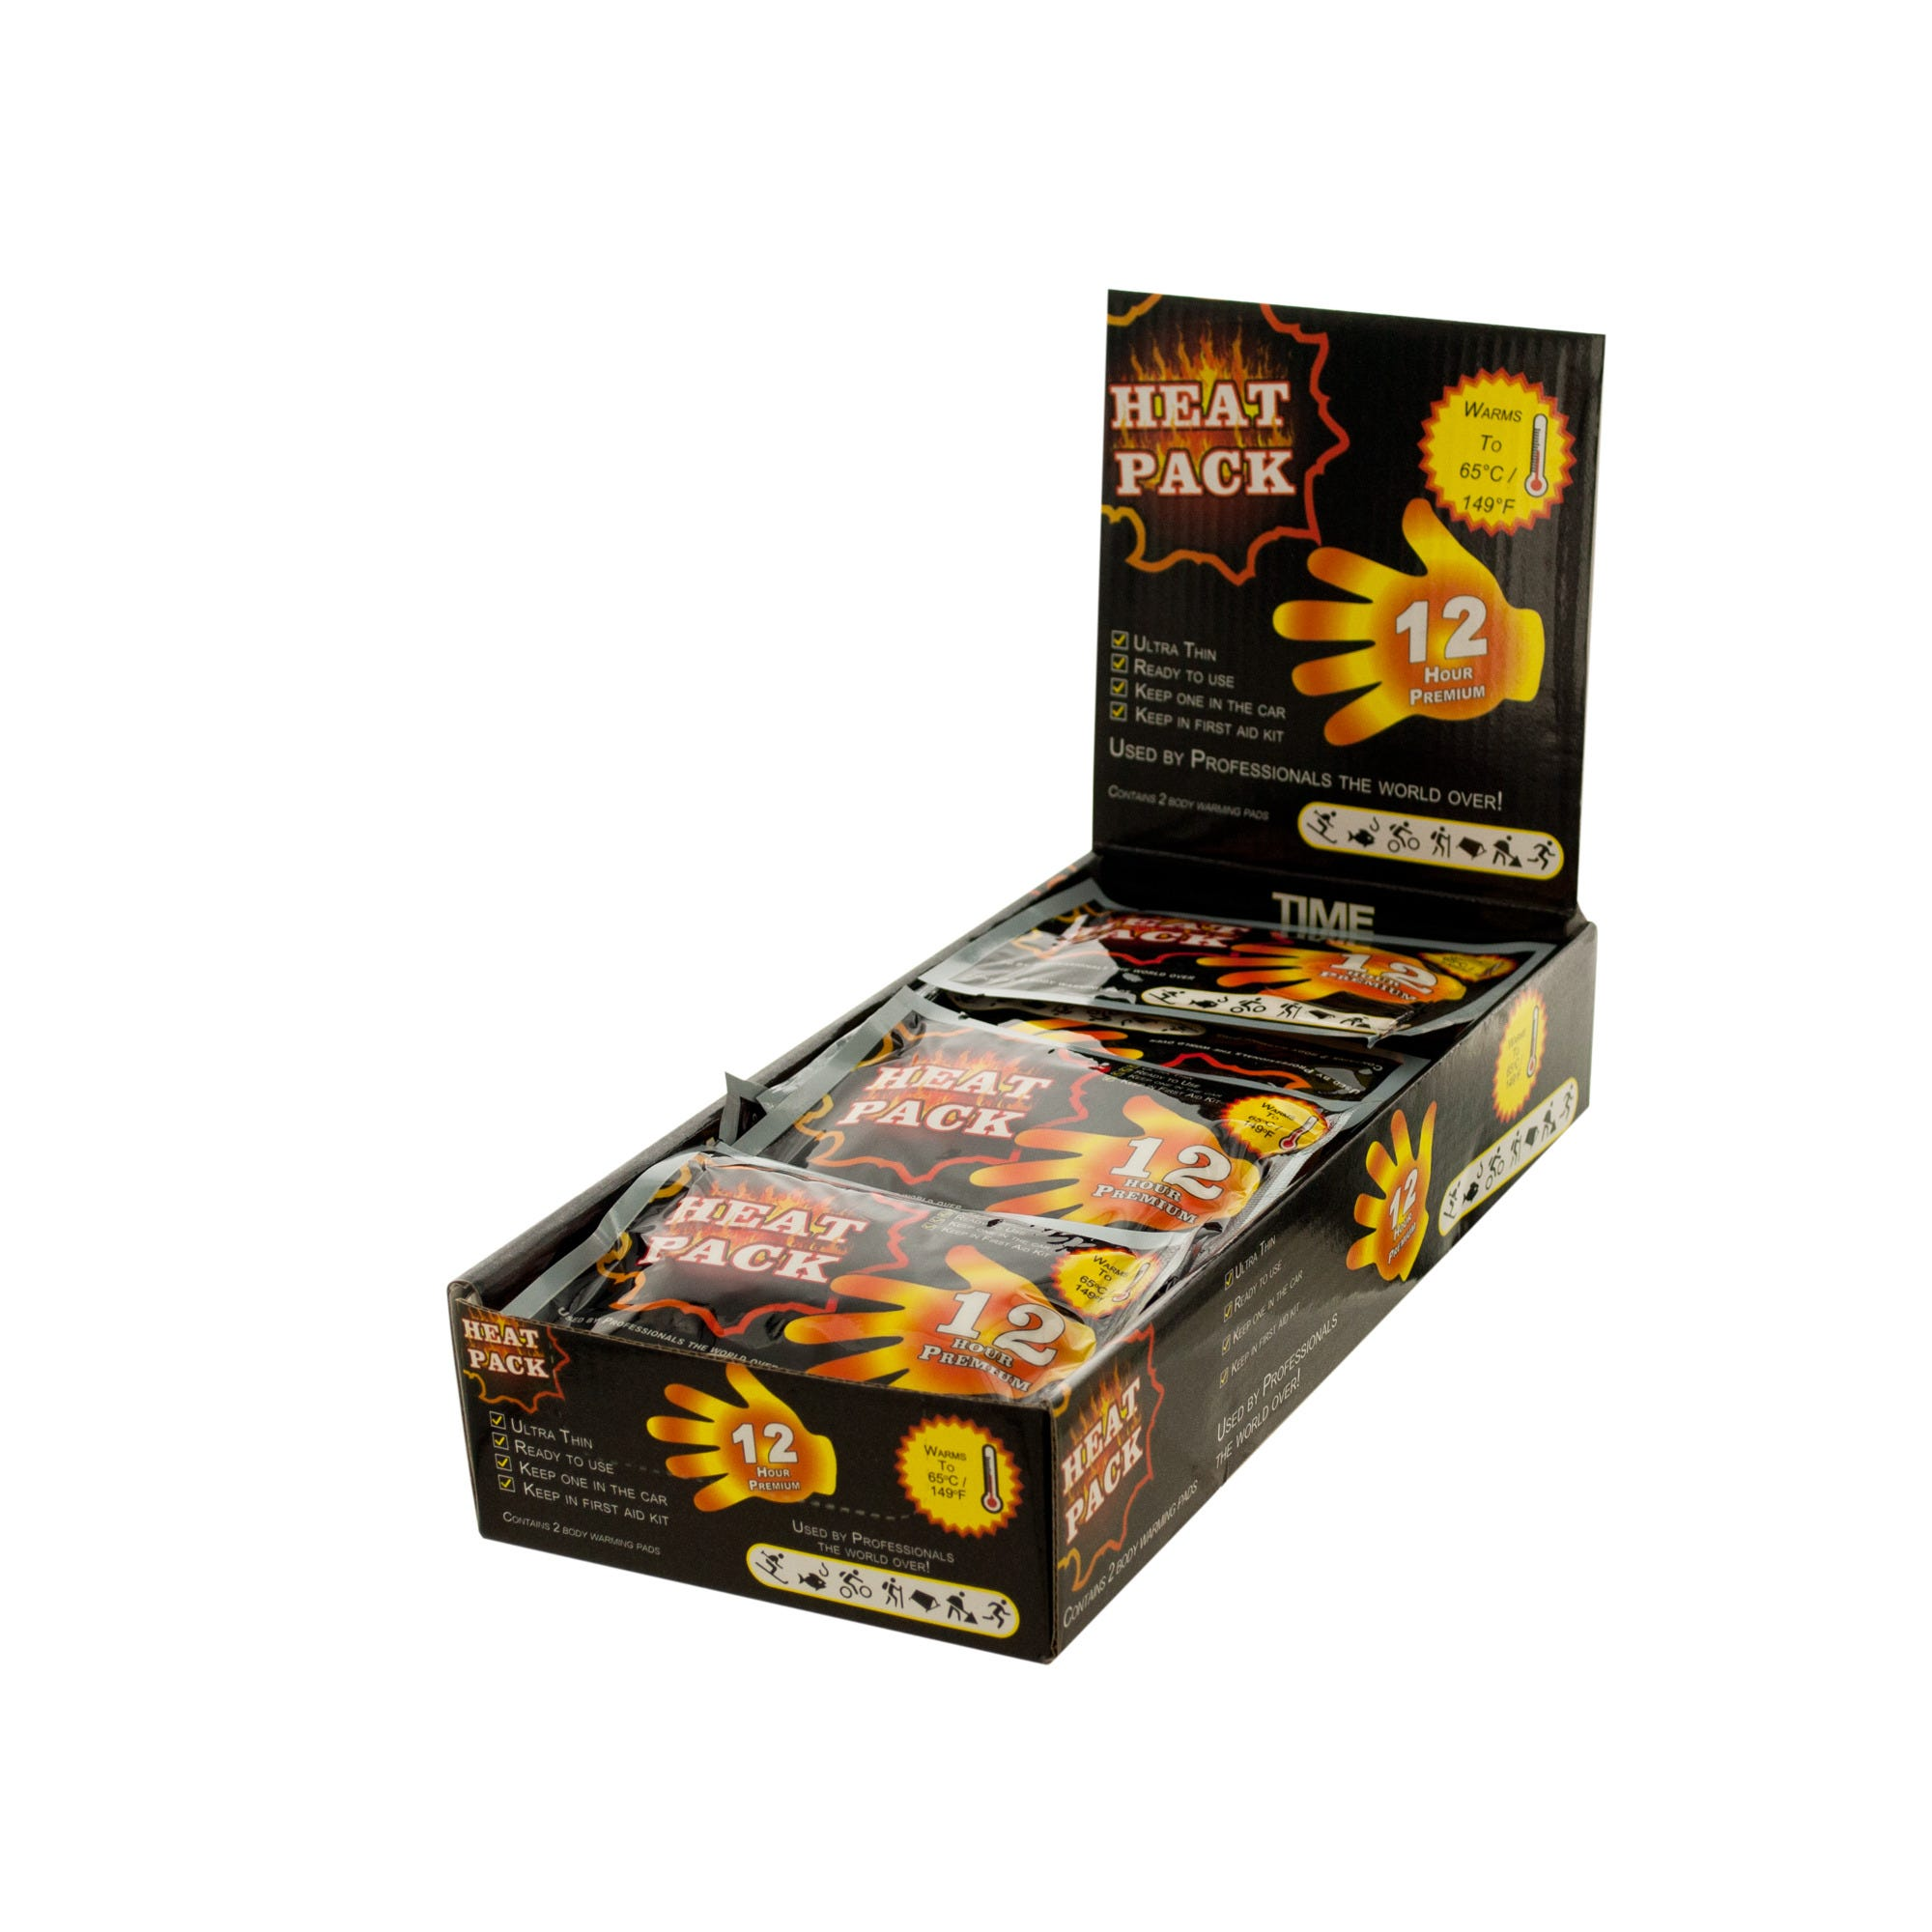 Heat Pack Hand Warmer Countertop Display- Qty 25